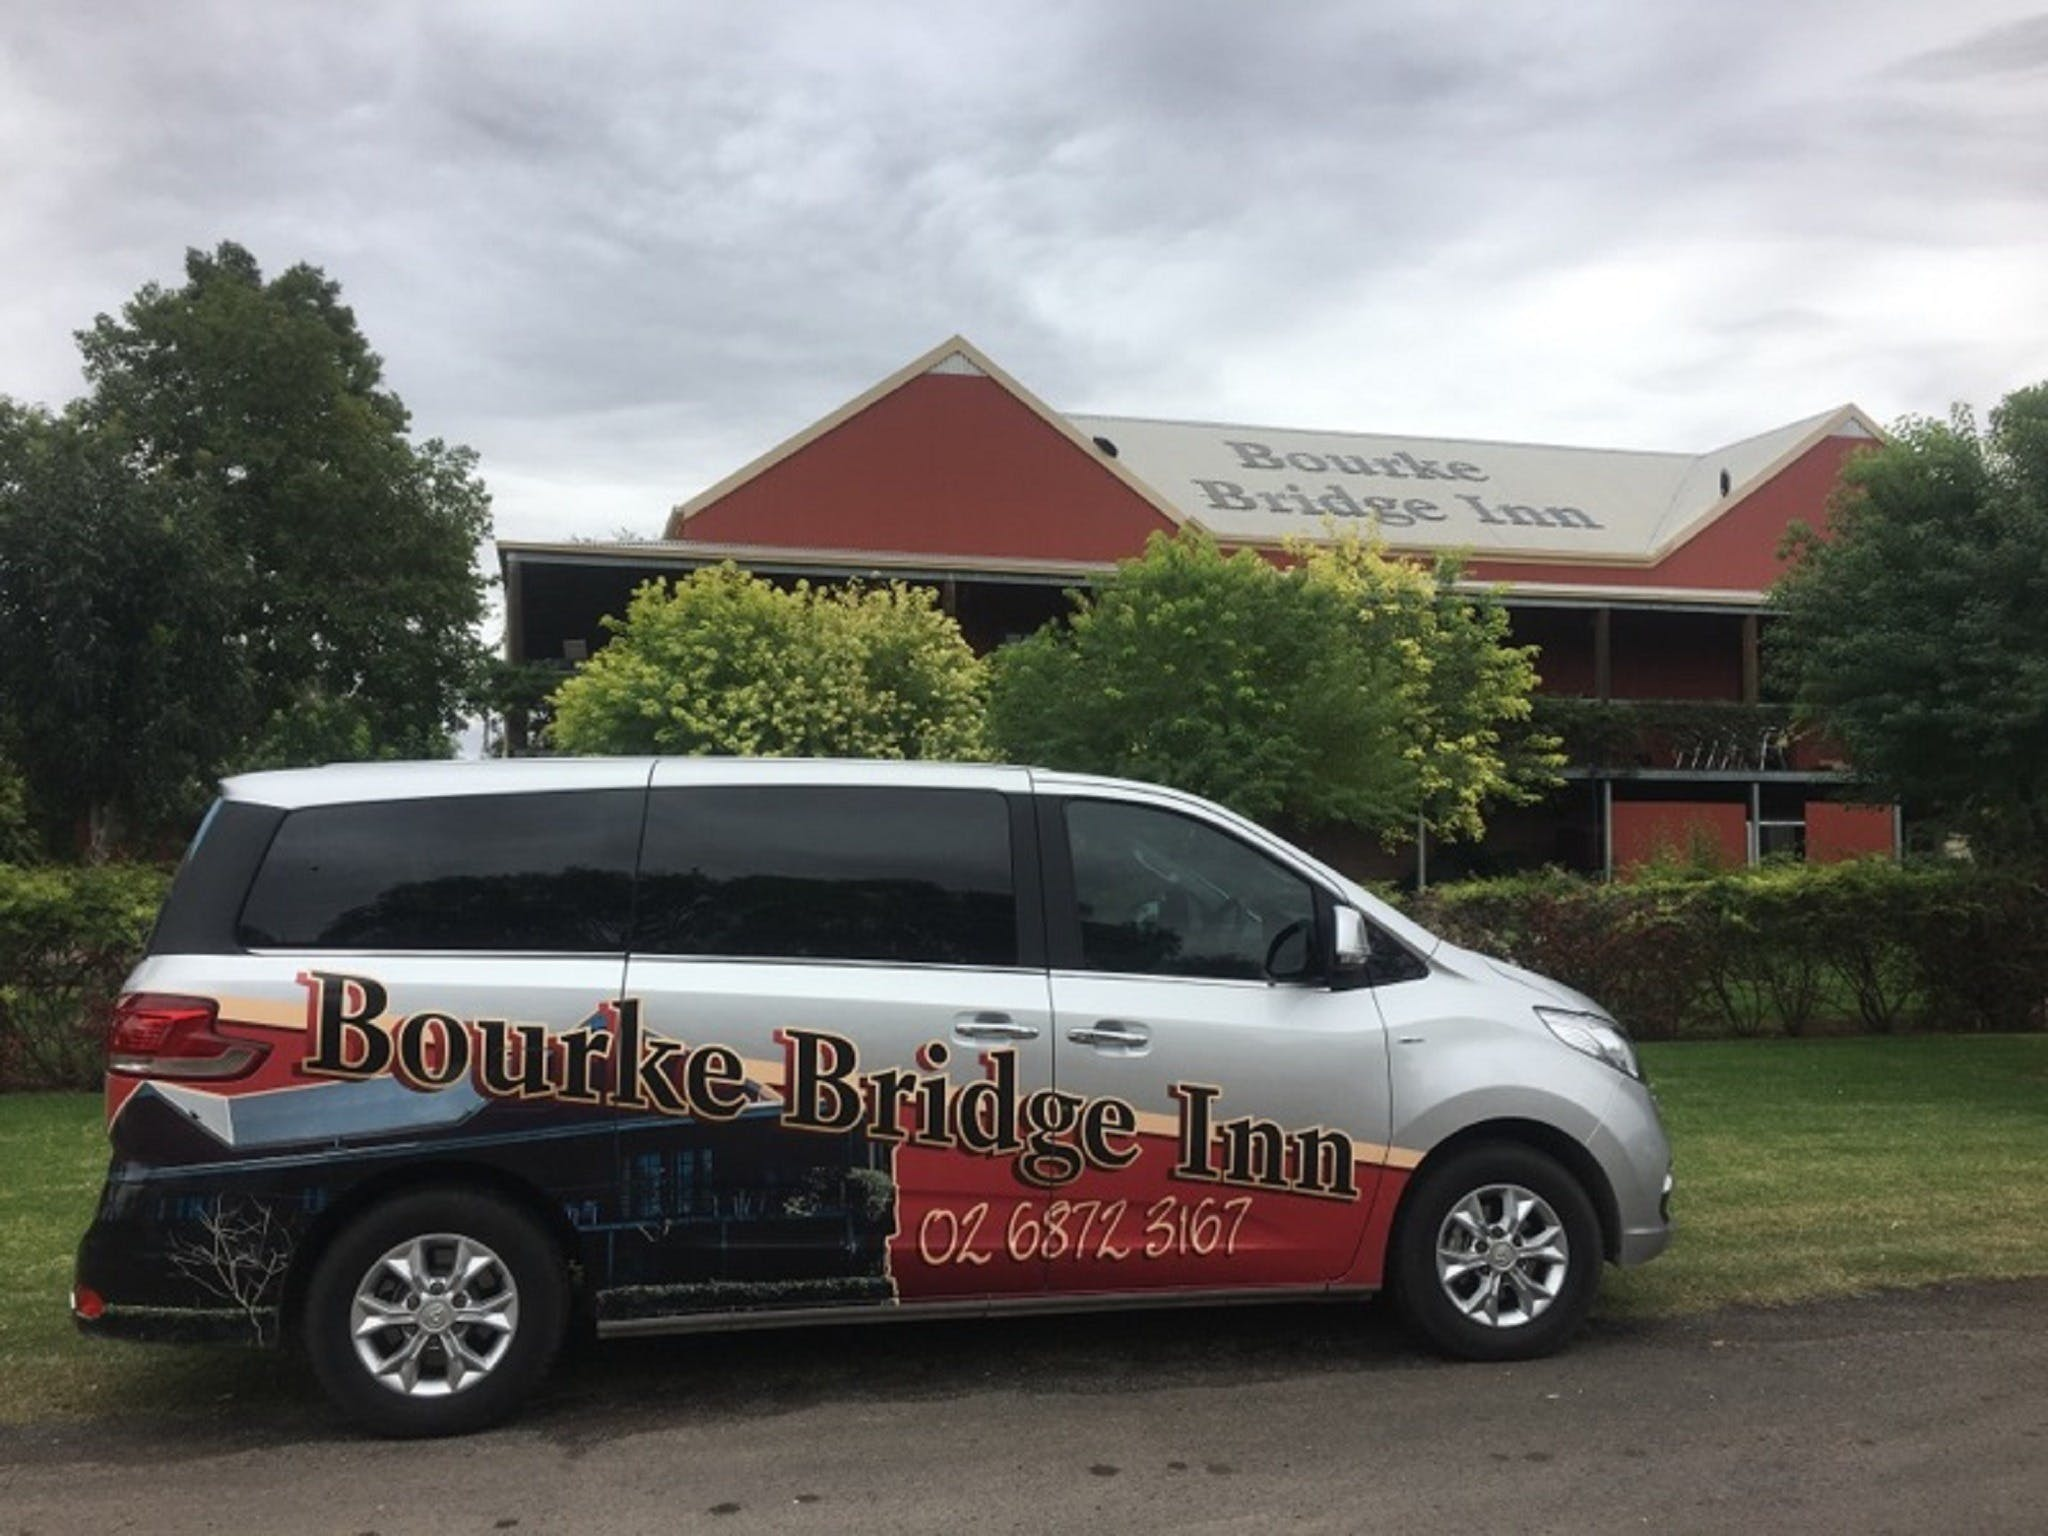 Bourke Bridge Inn - Accommodation in Surfers Paradise